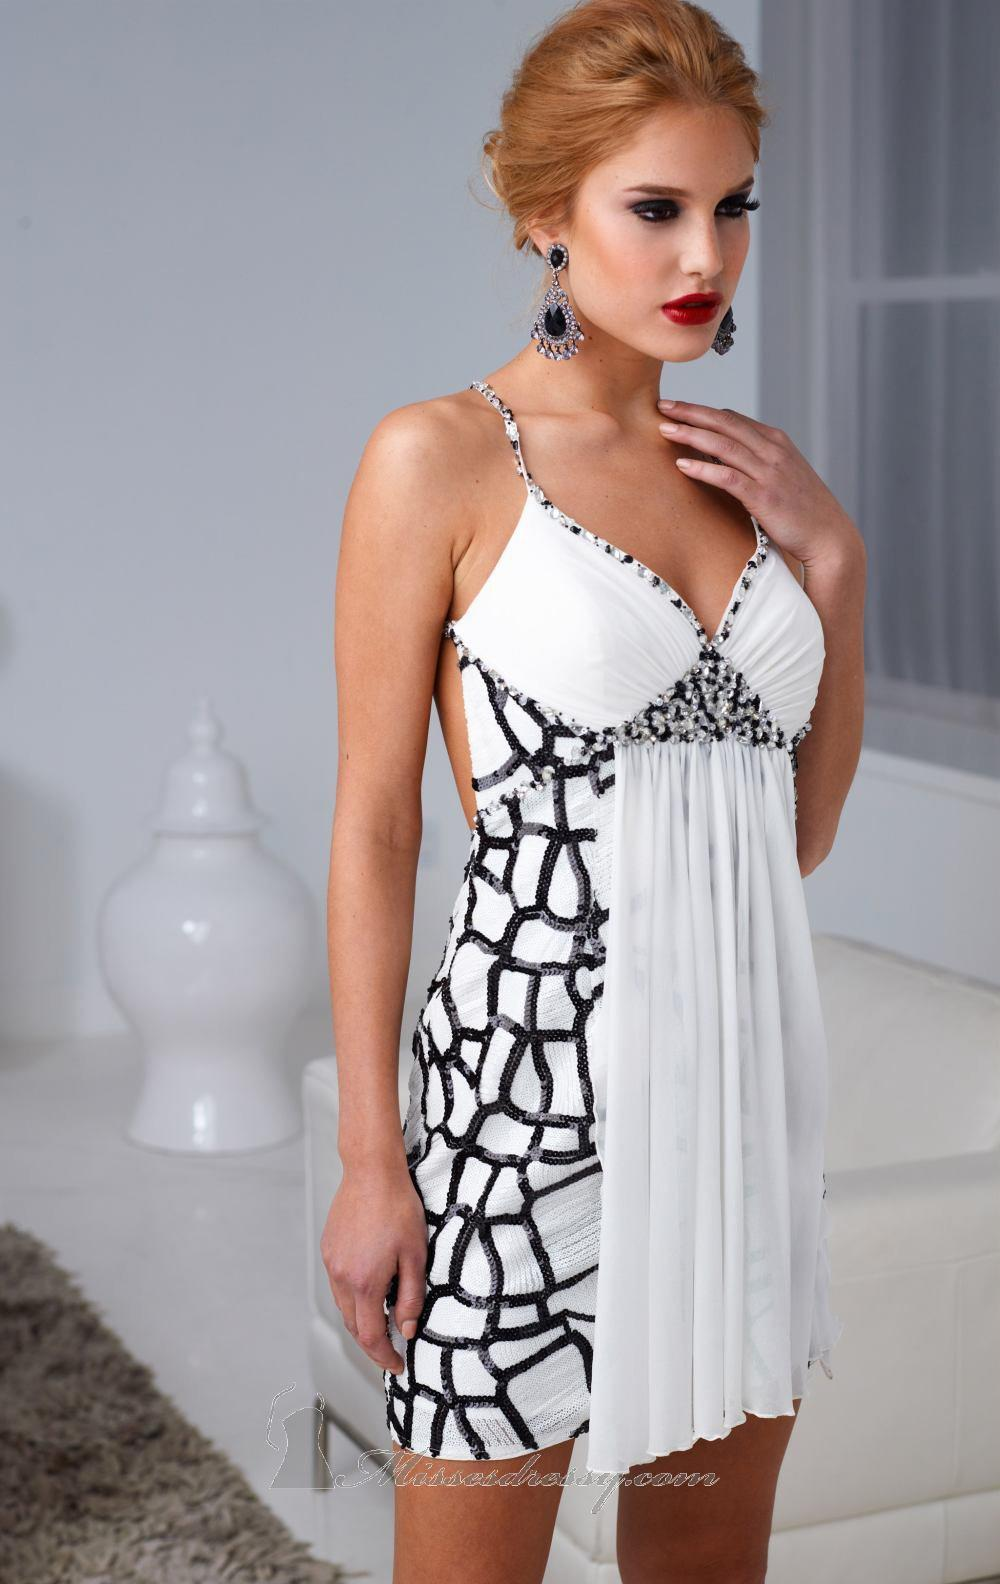 H1246 Dress - MissesDressy.com